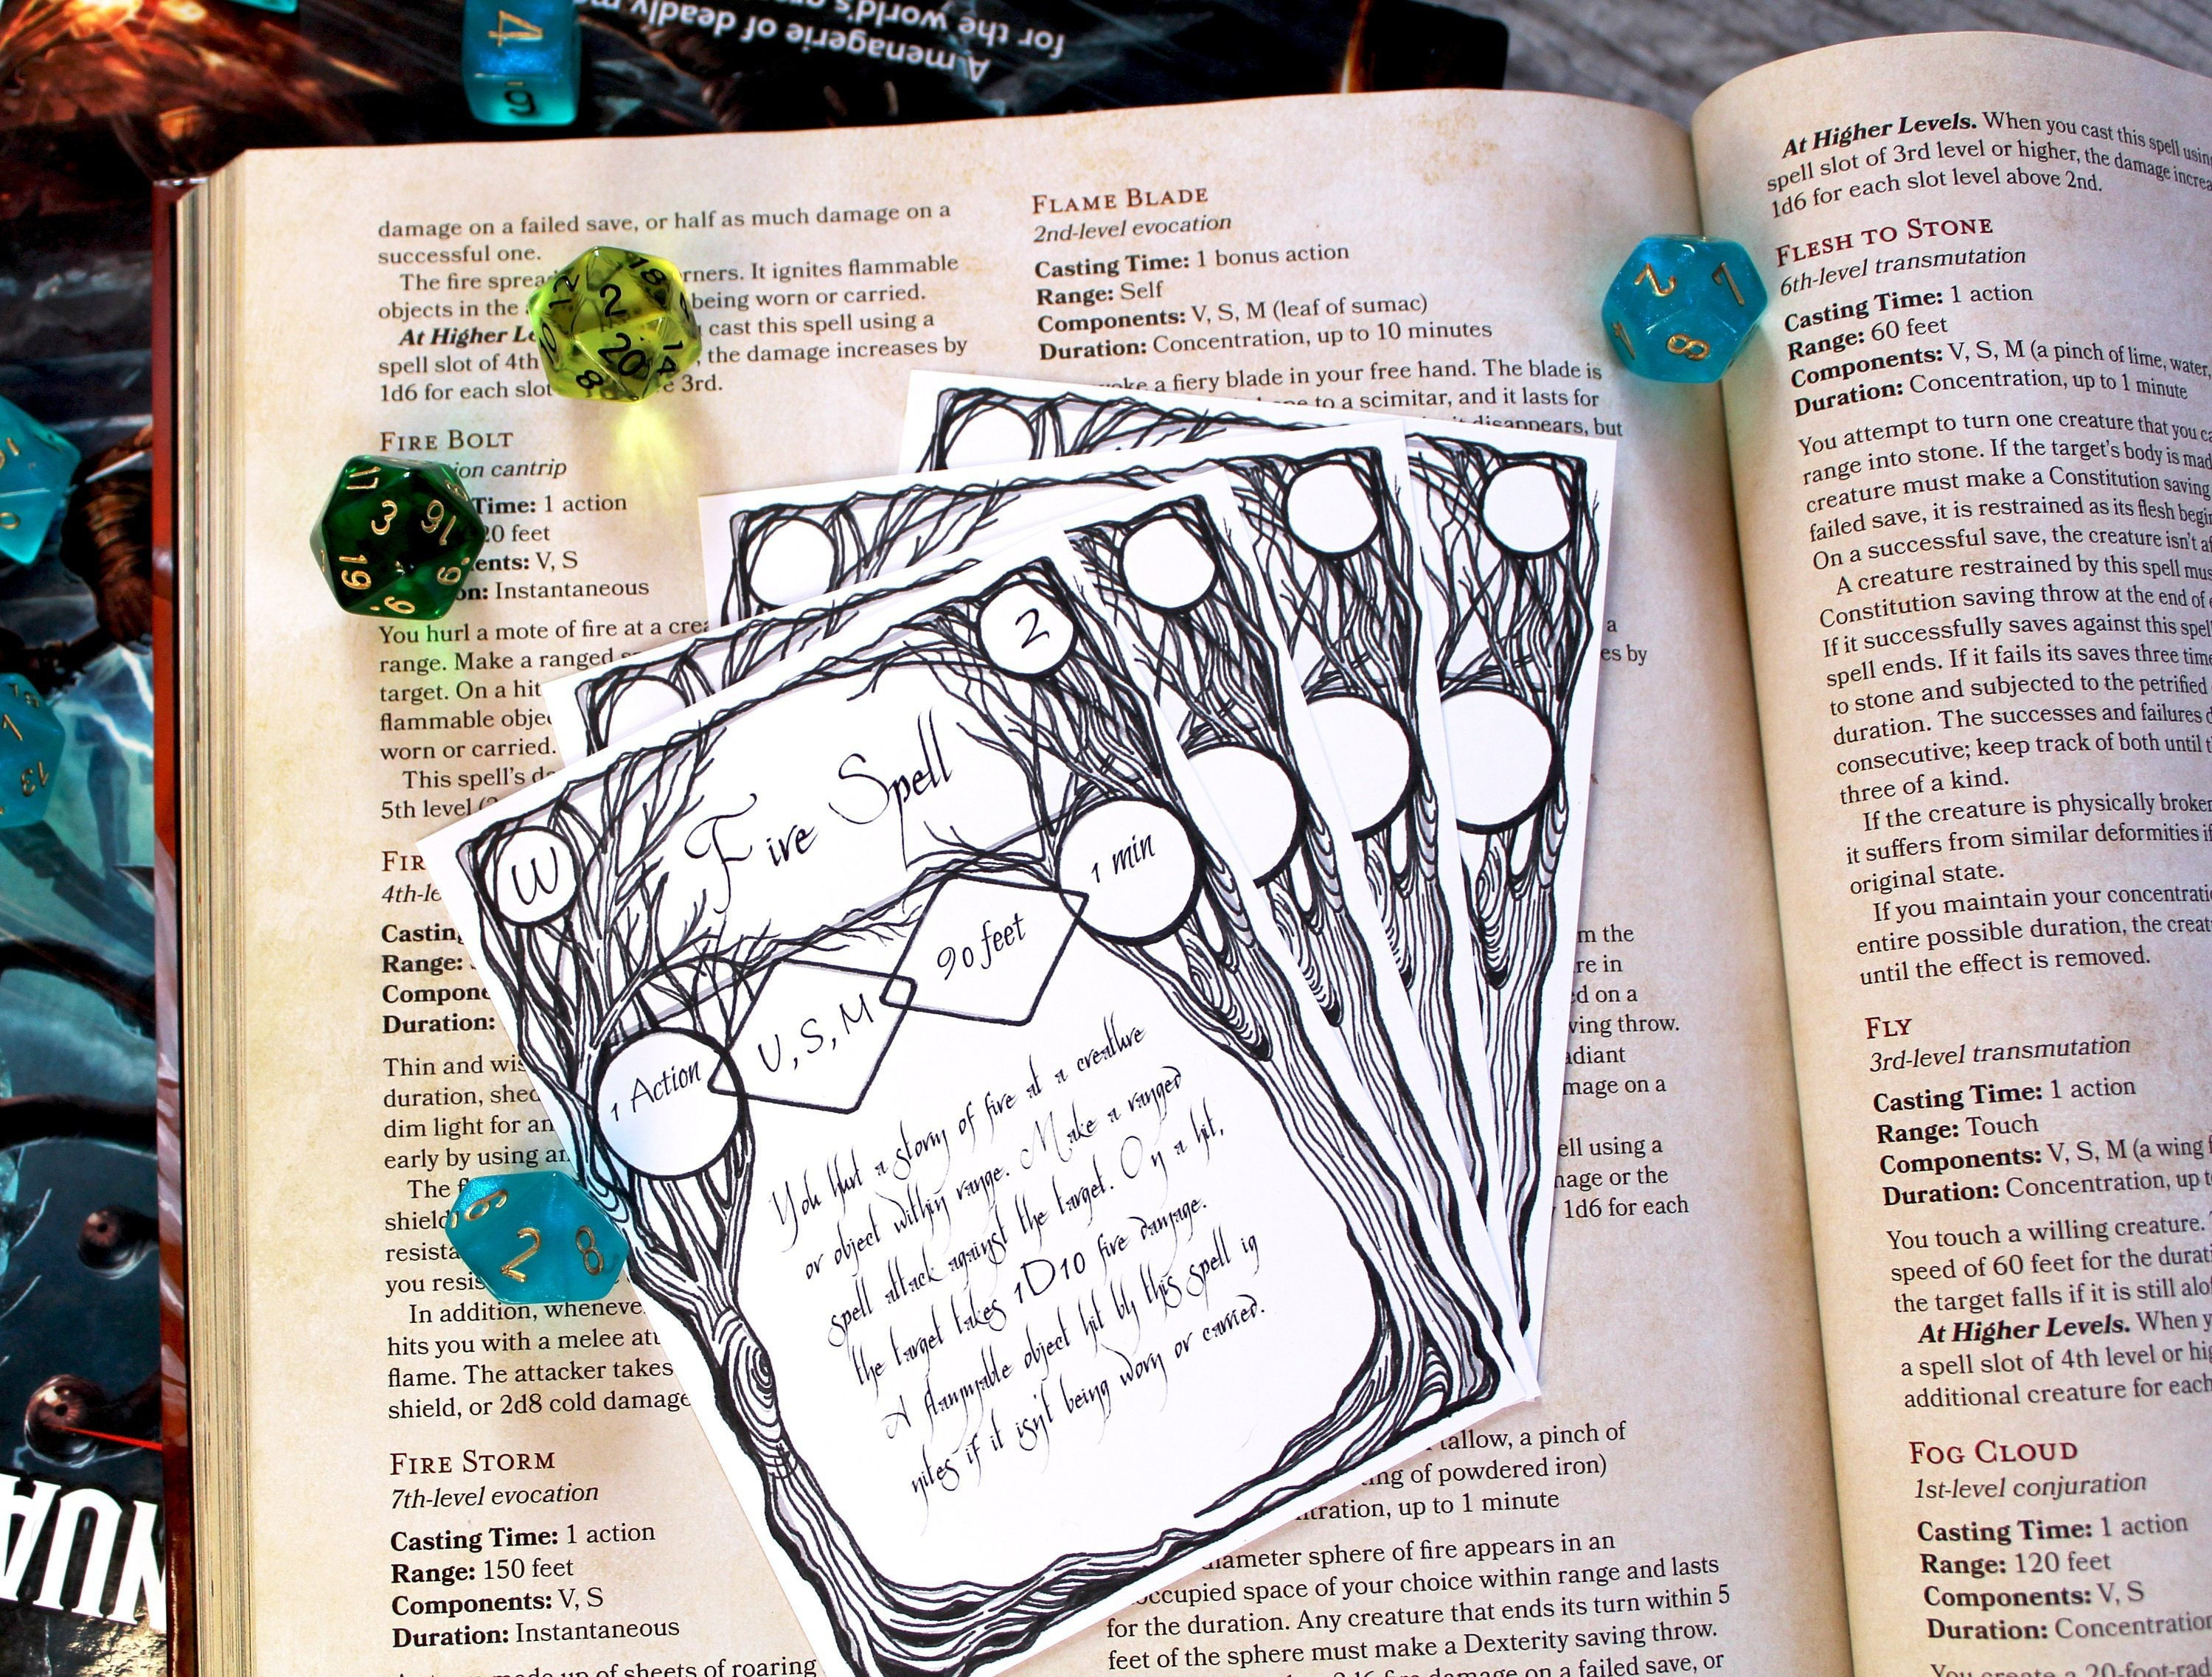 photo relating to Dnd 5e Printable Spell Cards called Tree Spell Card Printable and Fillable Template- Electronic Down load for Dnd, Pathfinder, RPG Video games or the day by day witch!